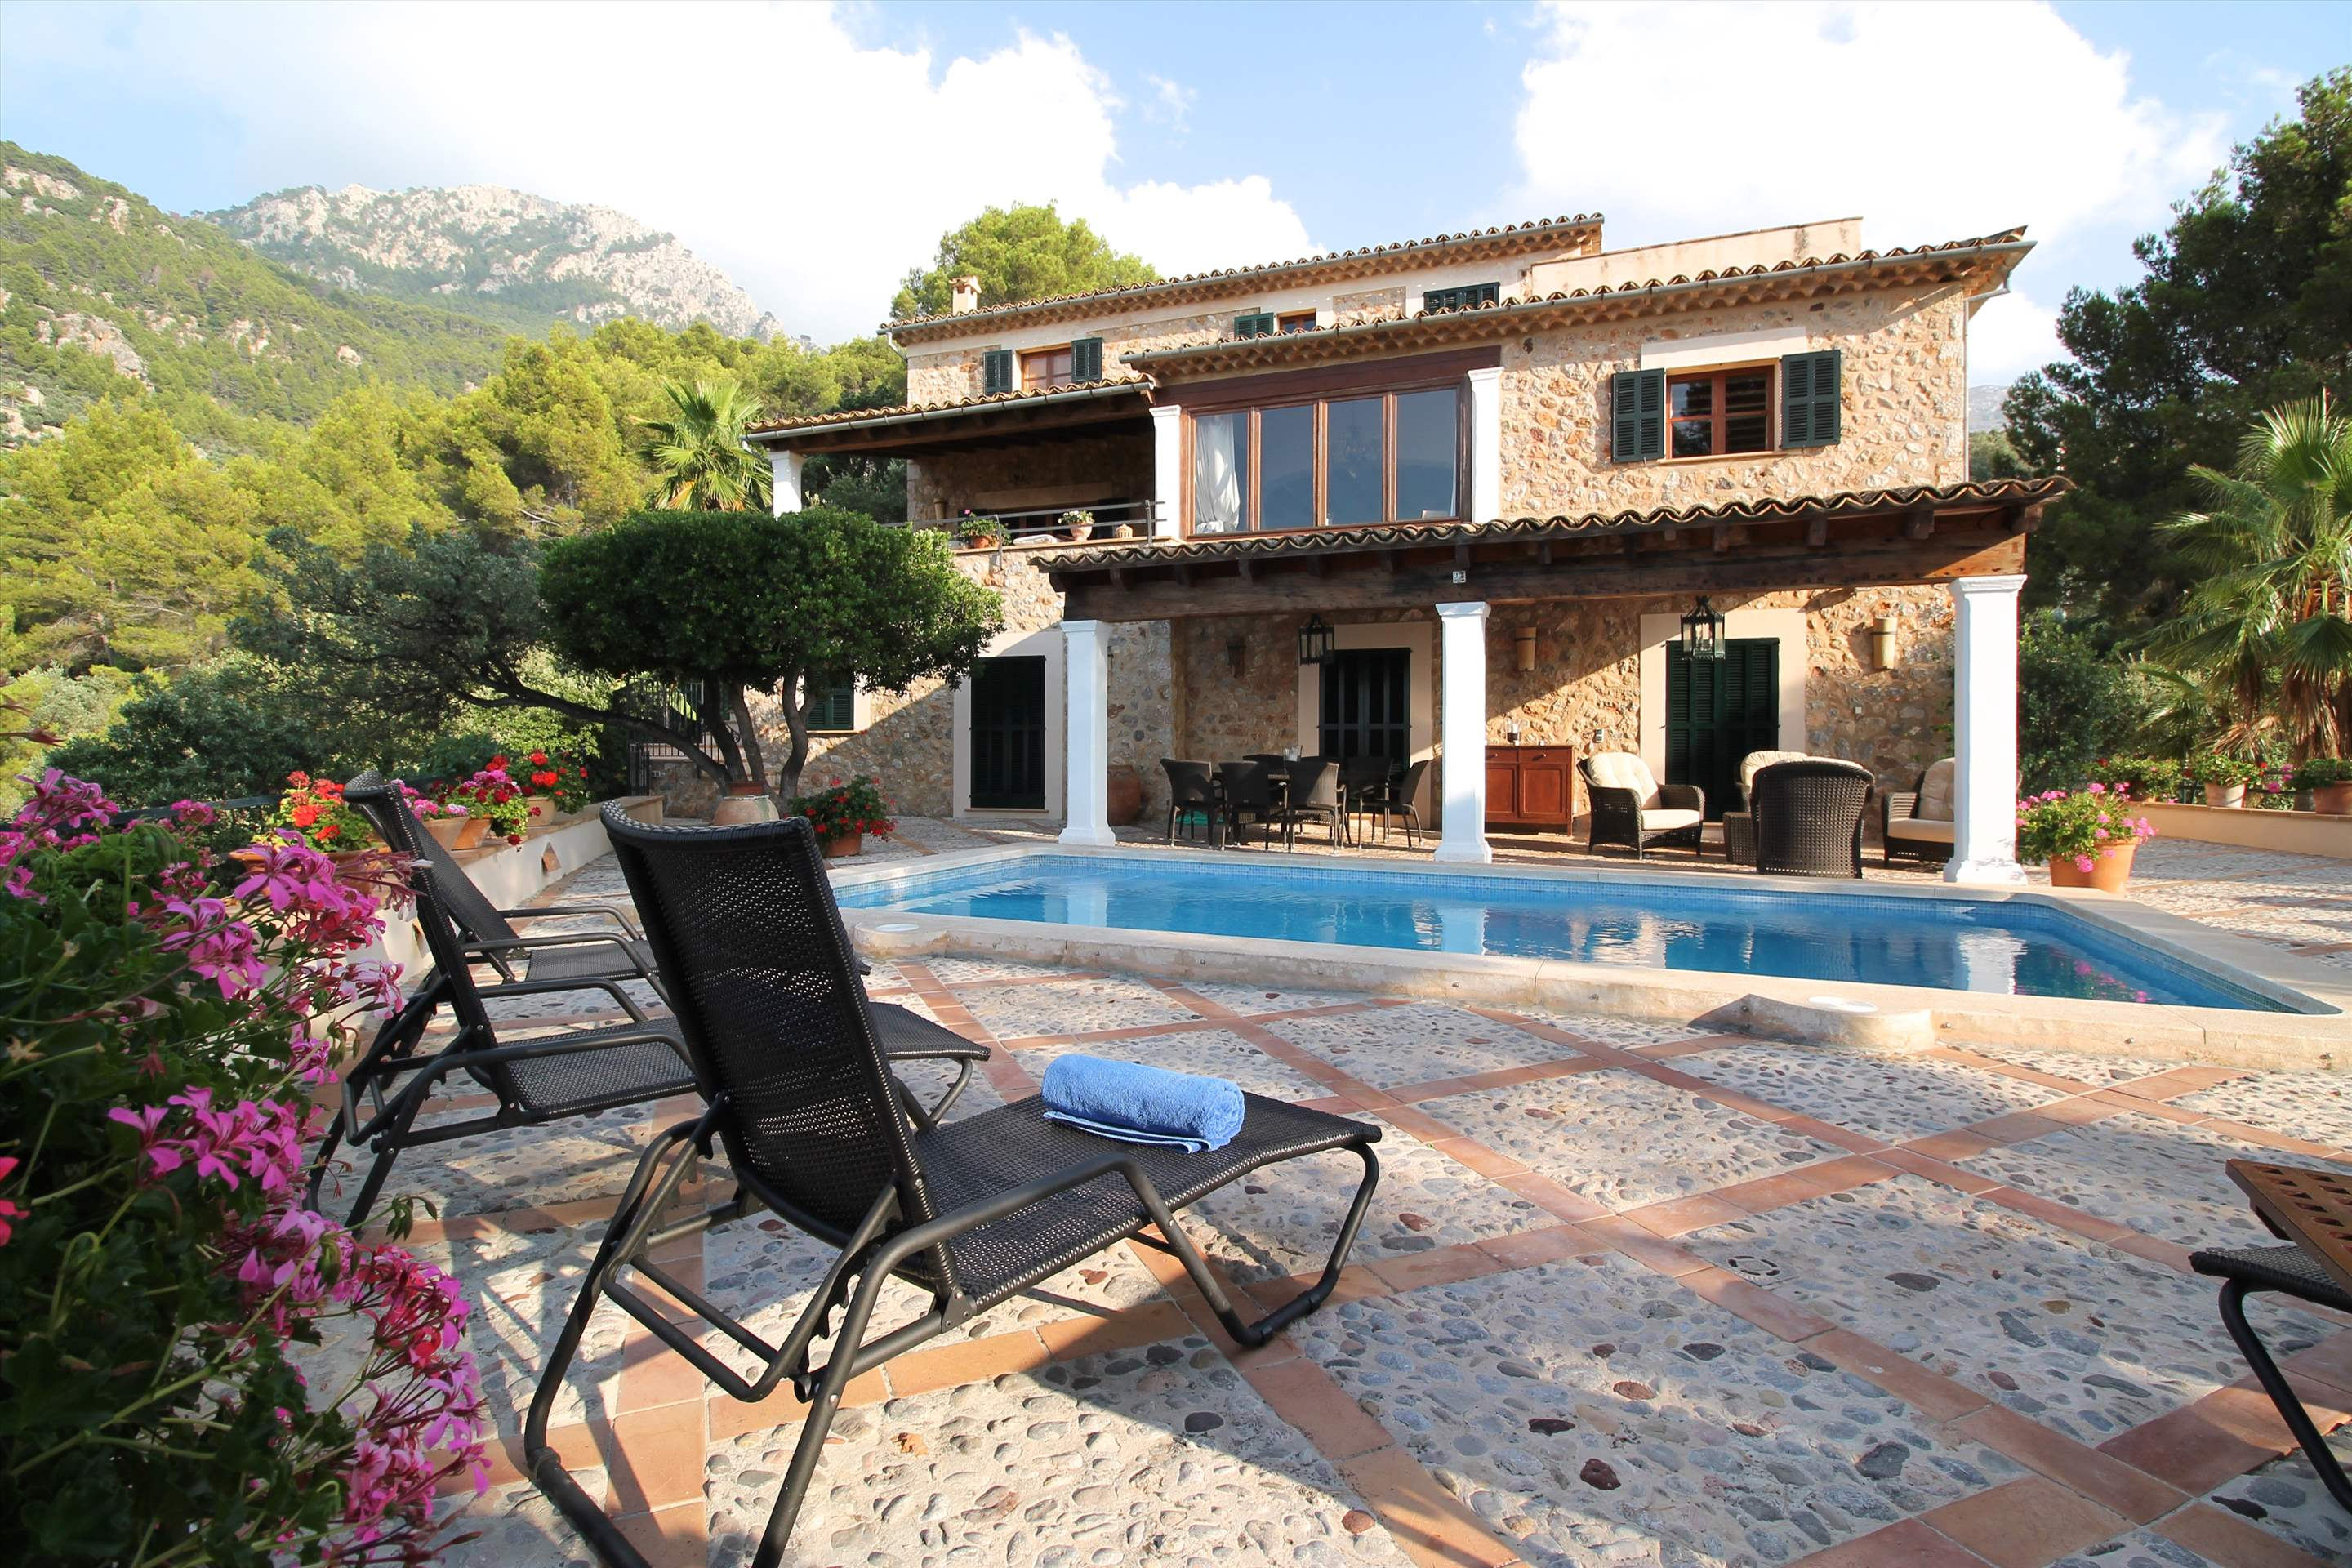 Can Winando, 4 Bedroom Rental, 4 bedroom villa in Soller & Deia, Majorca Photo #14